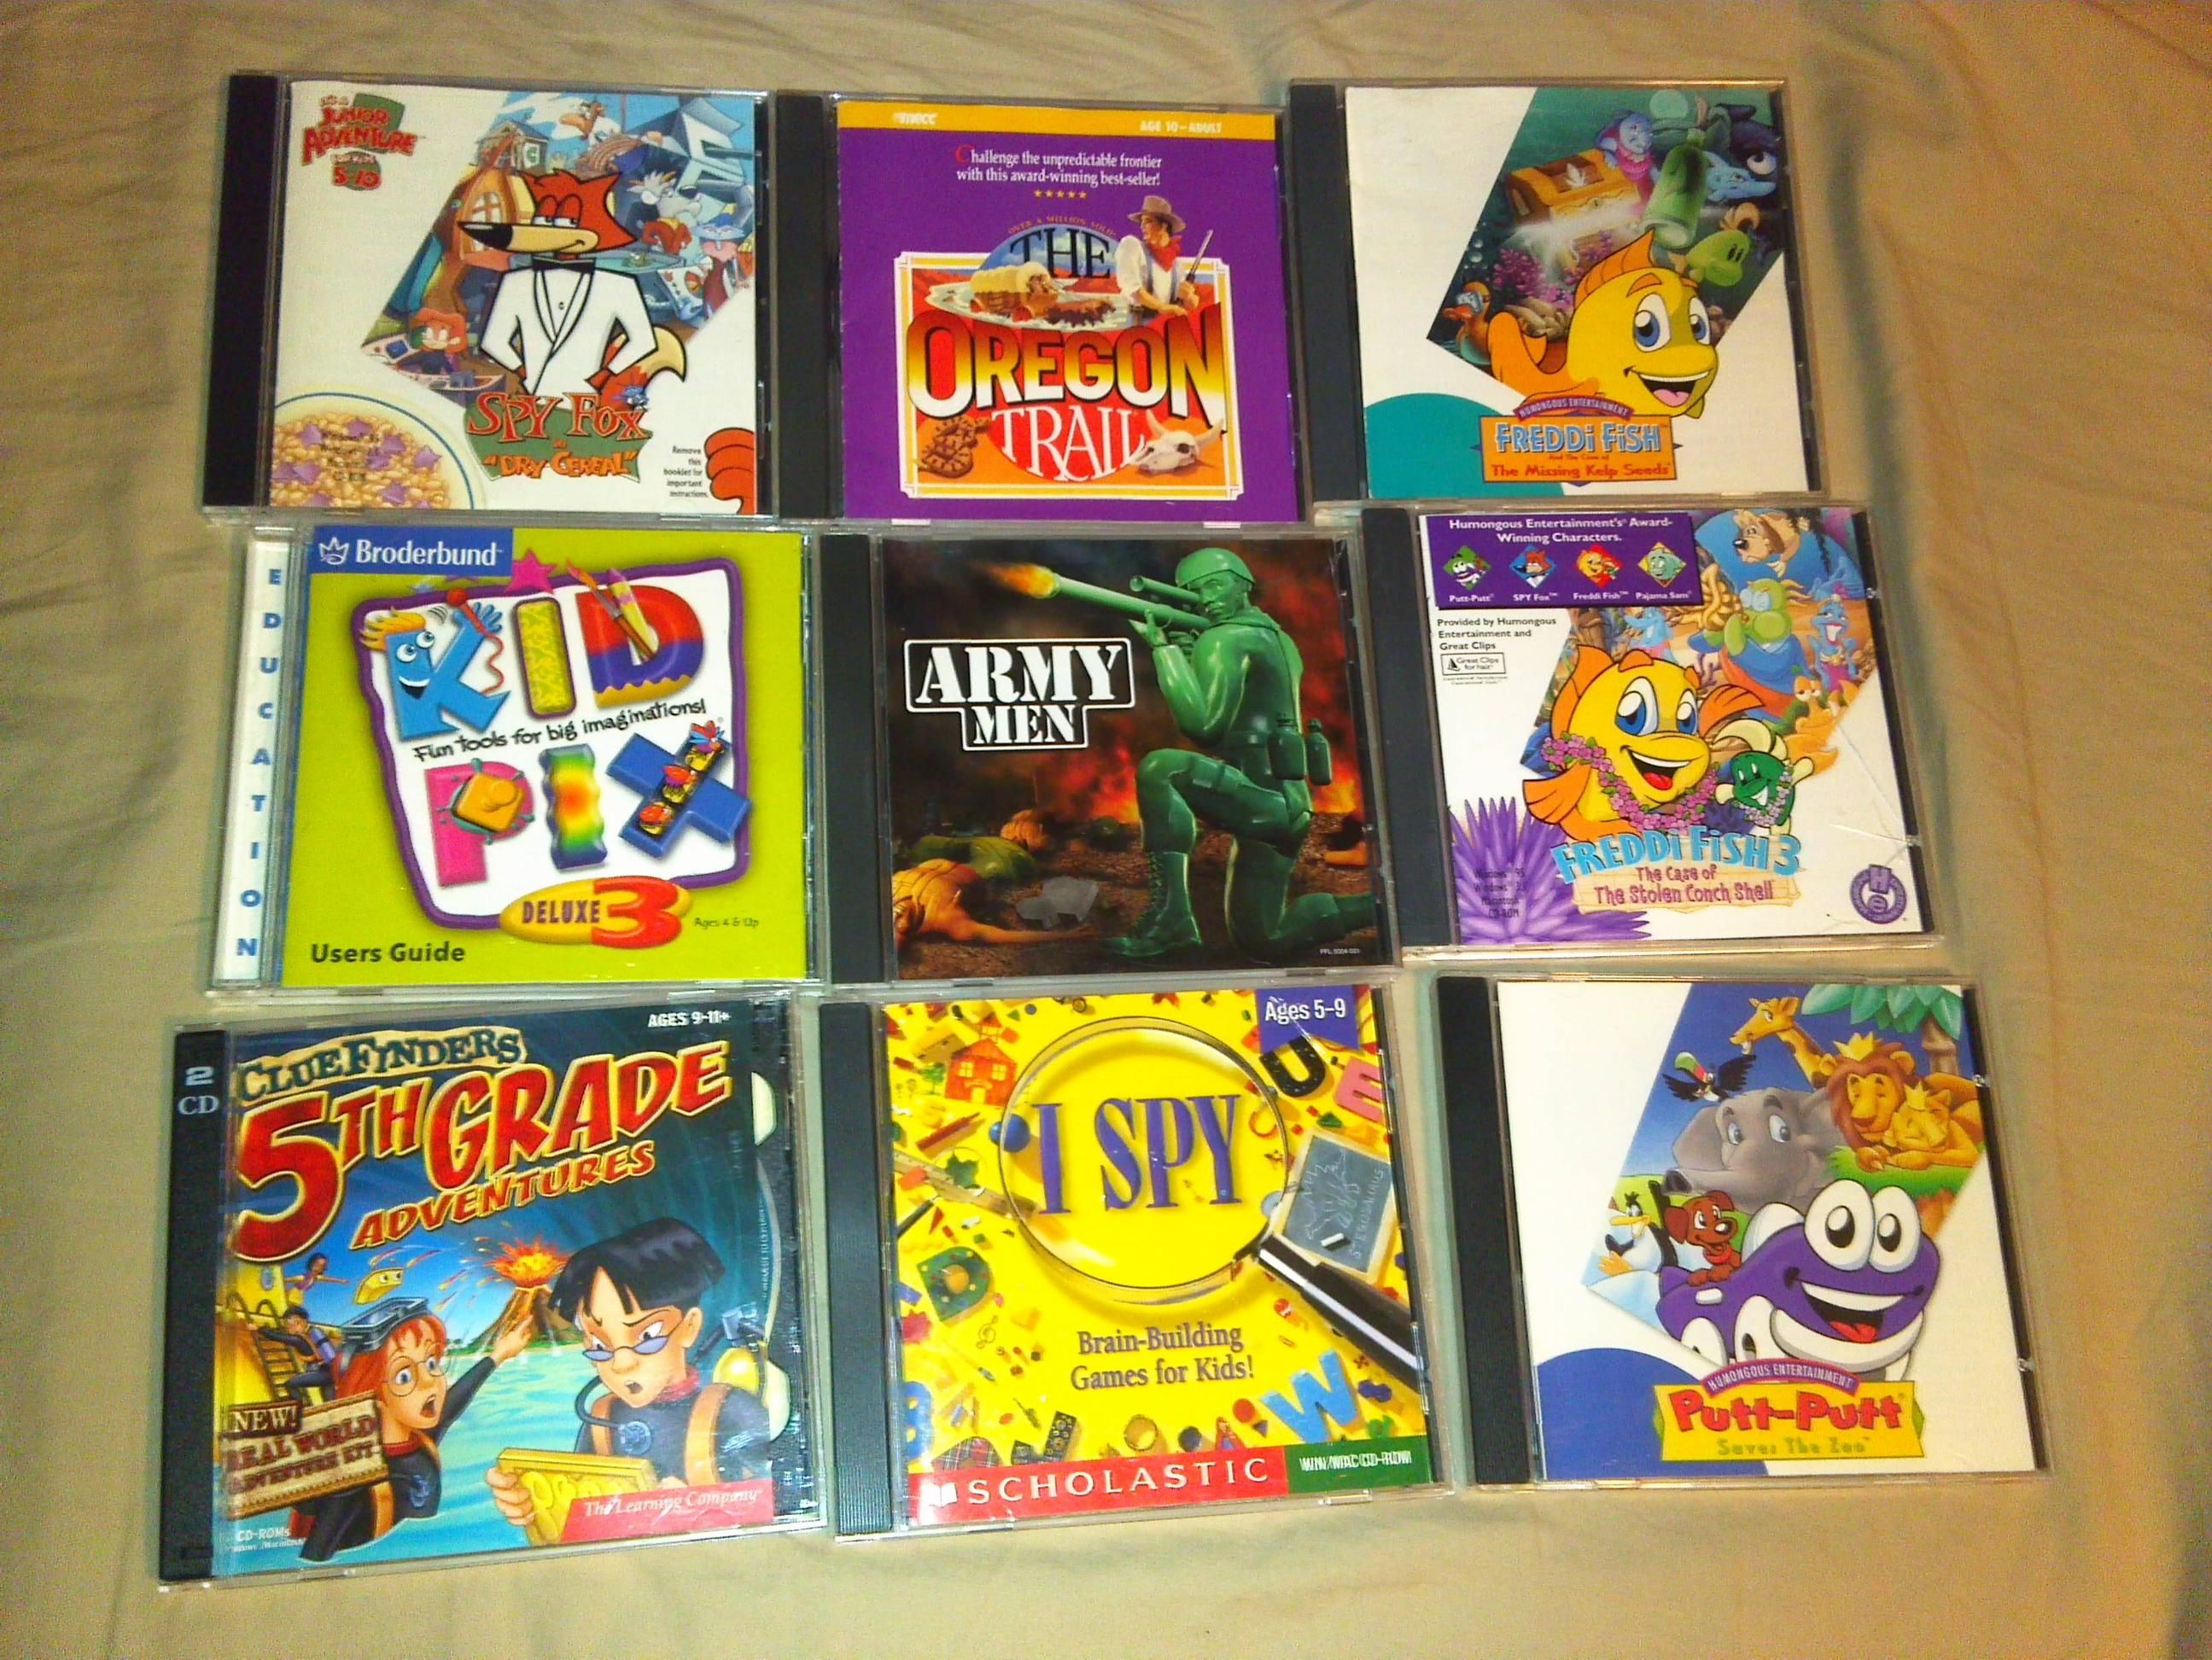 Who remembers having to use CDs to play Freddi Fish, Spy